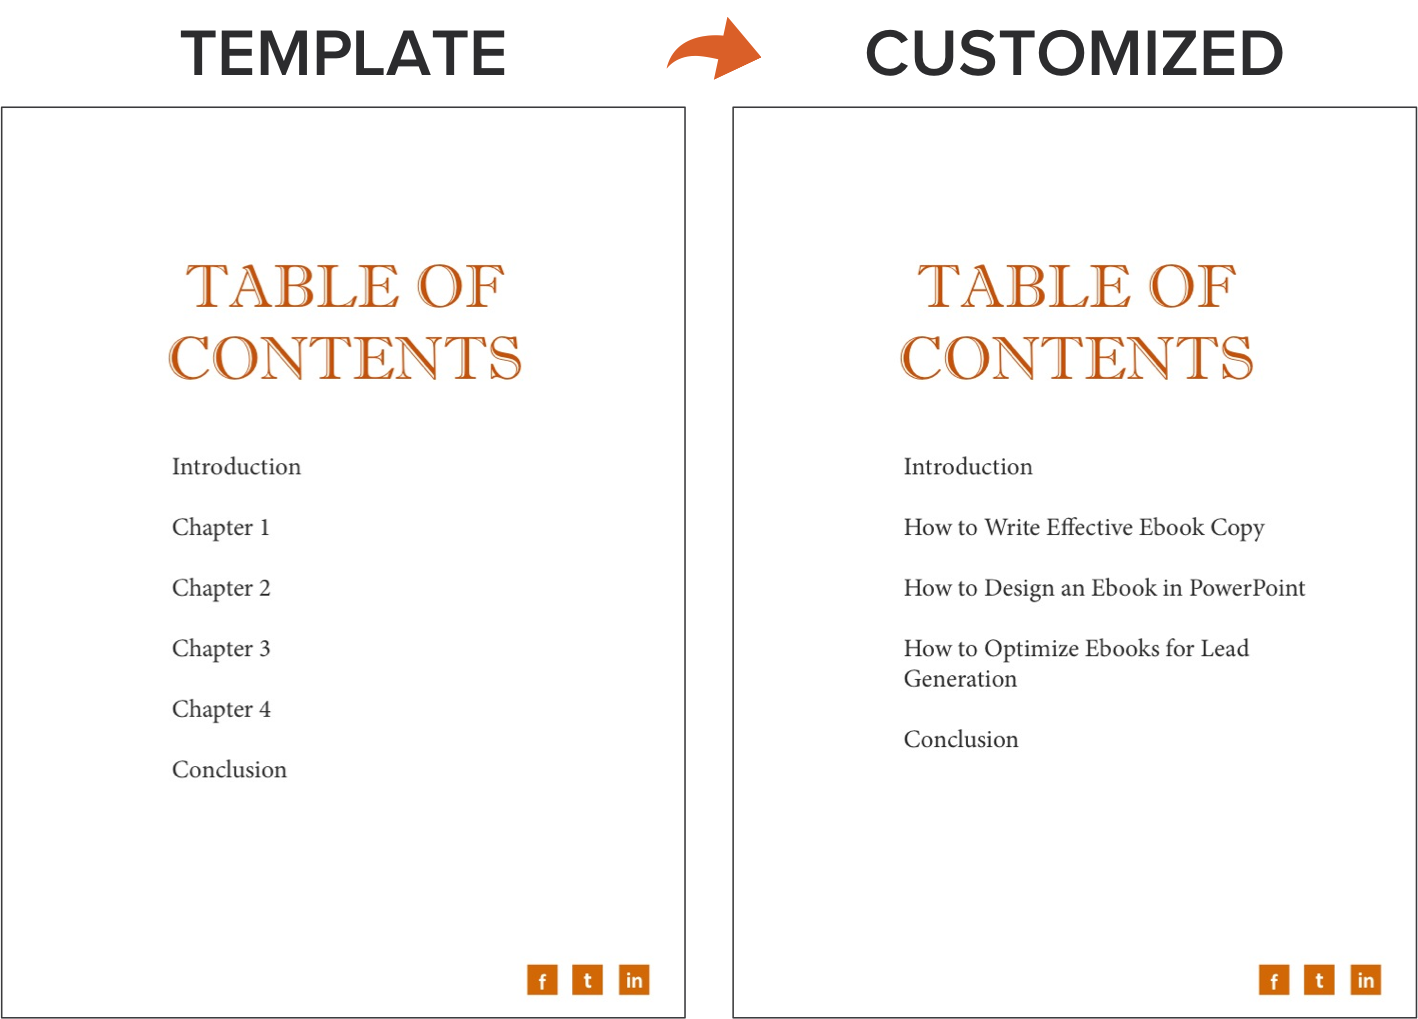 how to create an ebook from start to finish 18 free ebook templates for how to - Free Ebook Templates